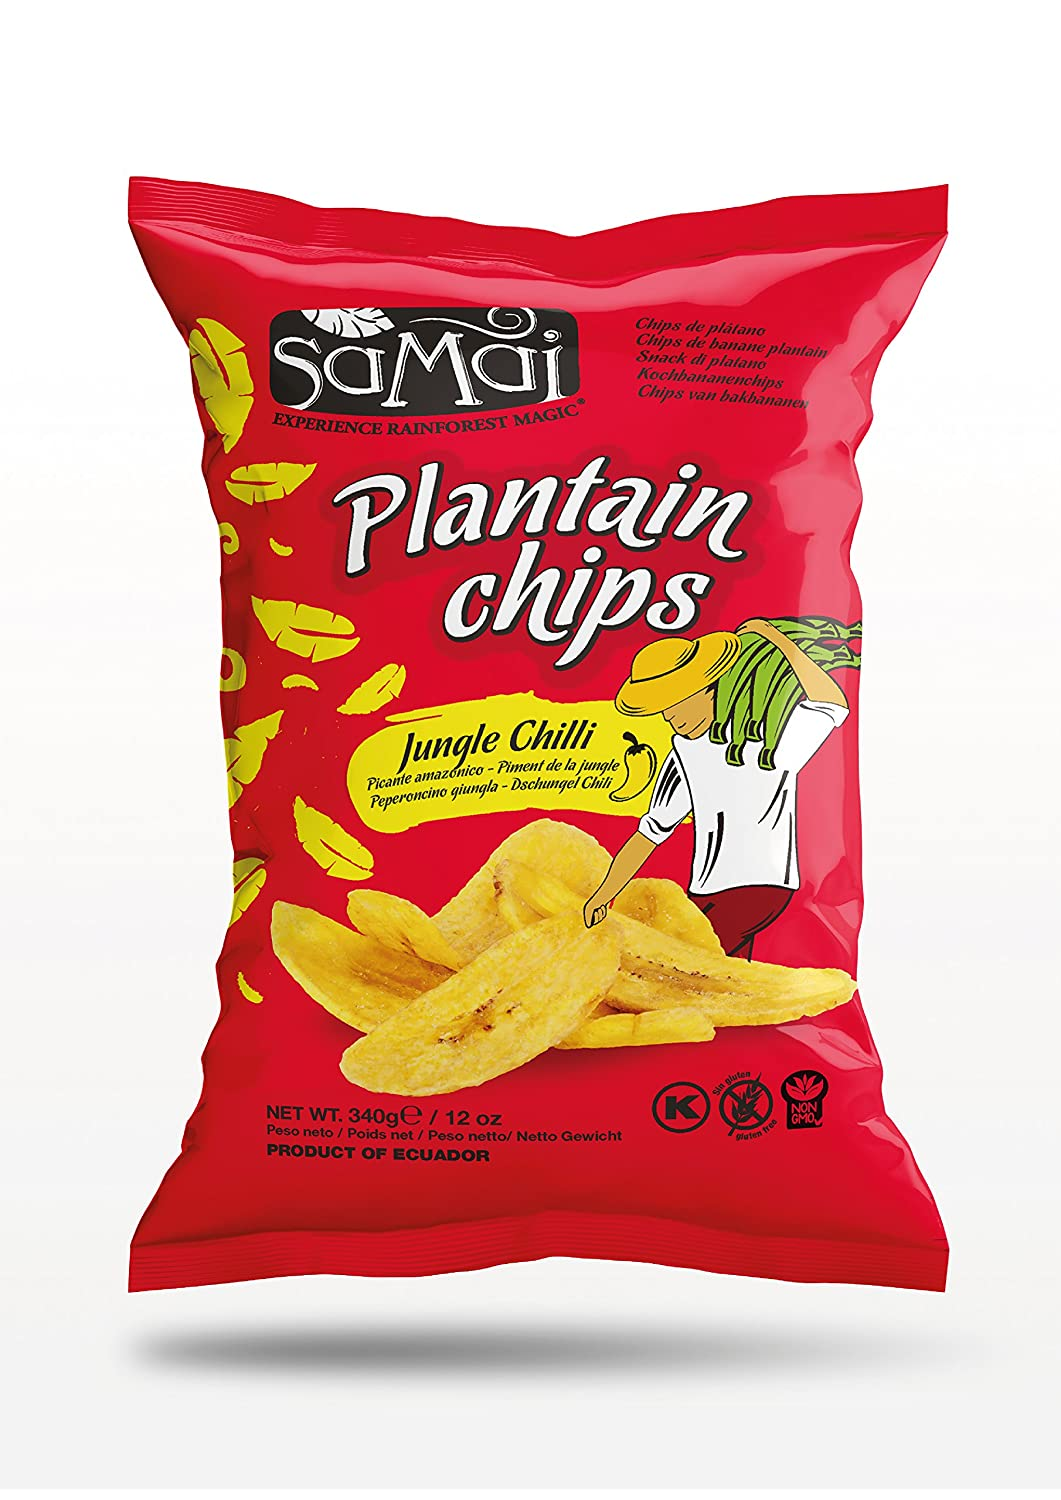 Amazon.com : Samai Plantain Chips Jungle Chili 12 oz (Pack of 12) : Grocery & Gourmet Food